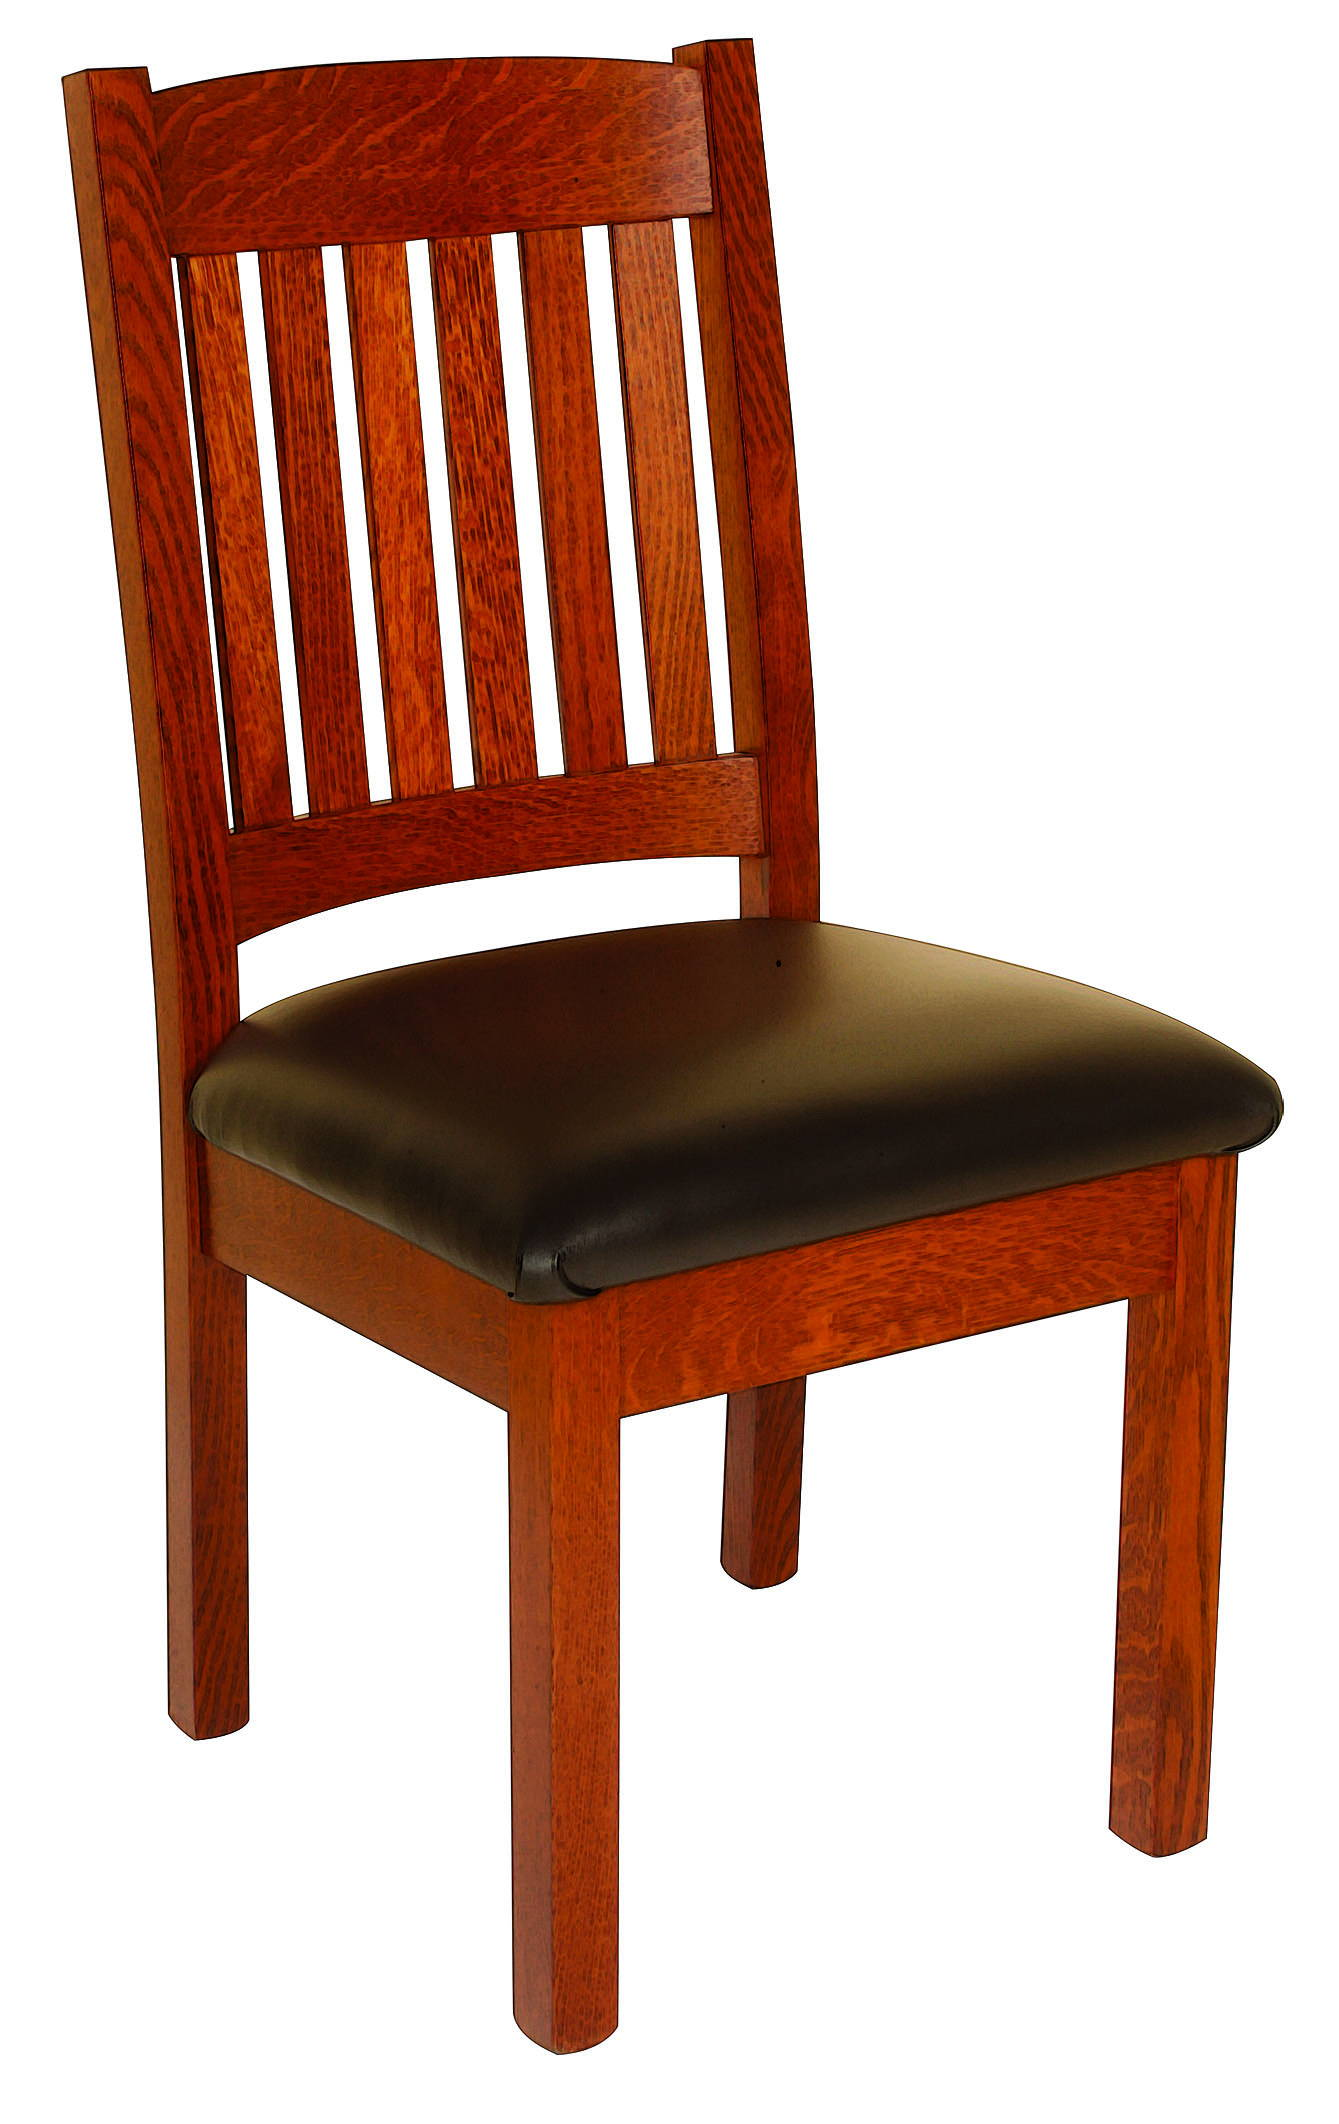 Vintage Mission Style Solid Wood, Handcrafted Kitchen Chair or DIning Chair from Harvest Home Interiors Amish Furniture